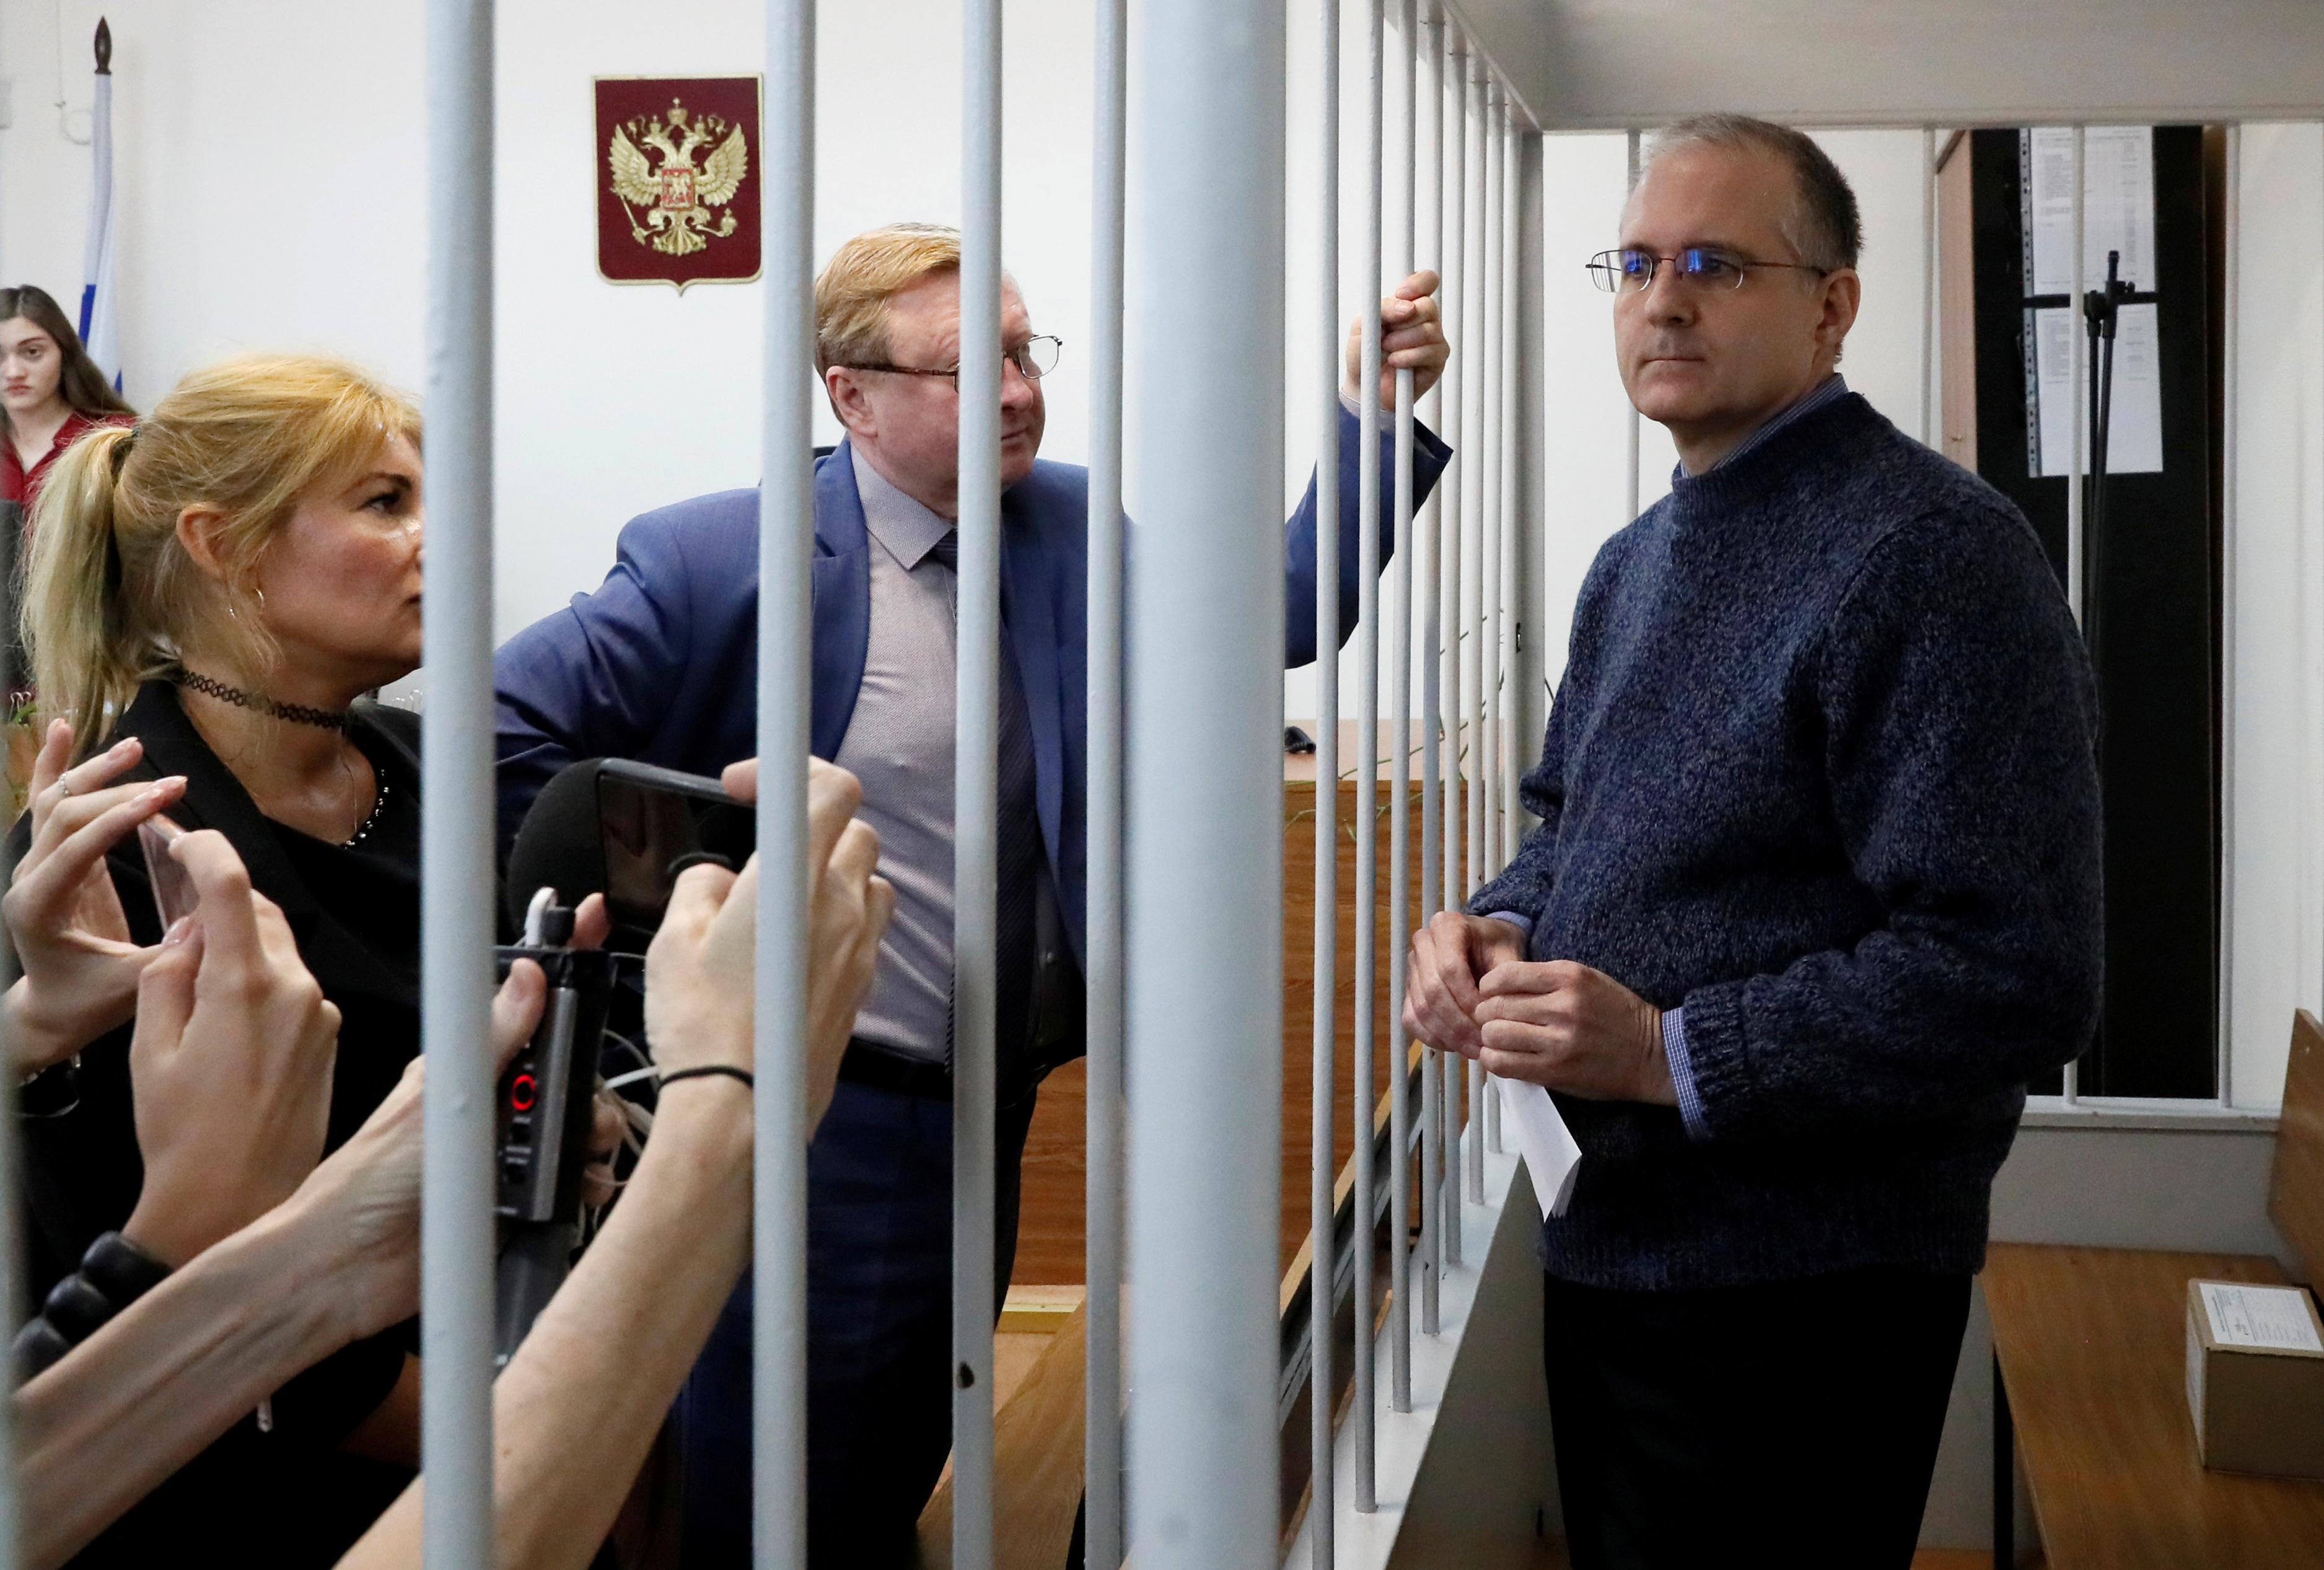 Ex-U.S. Marine held by Russia in spy case illegally isolated: activists